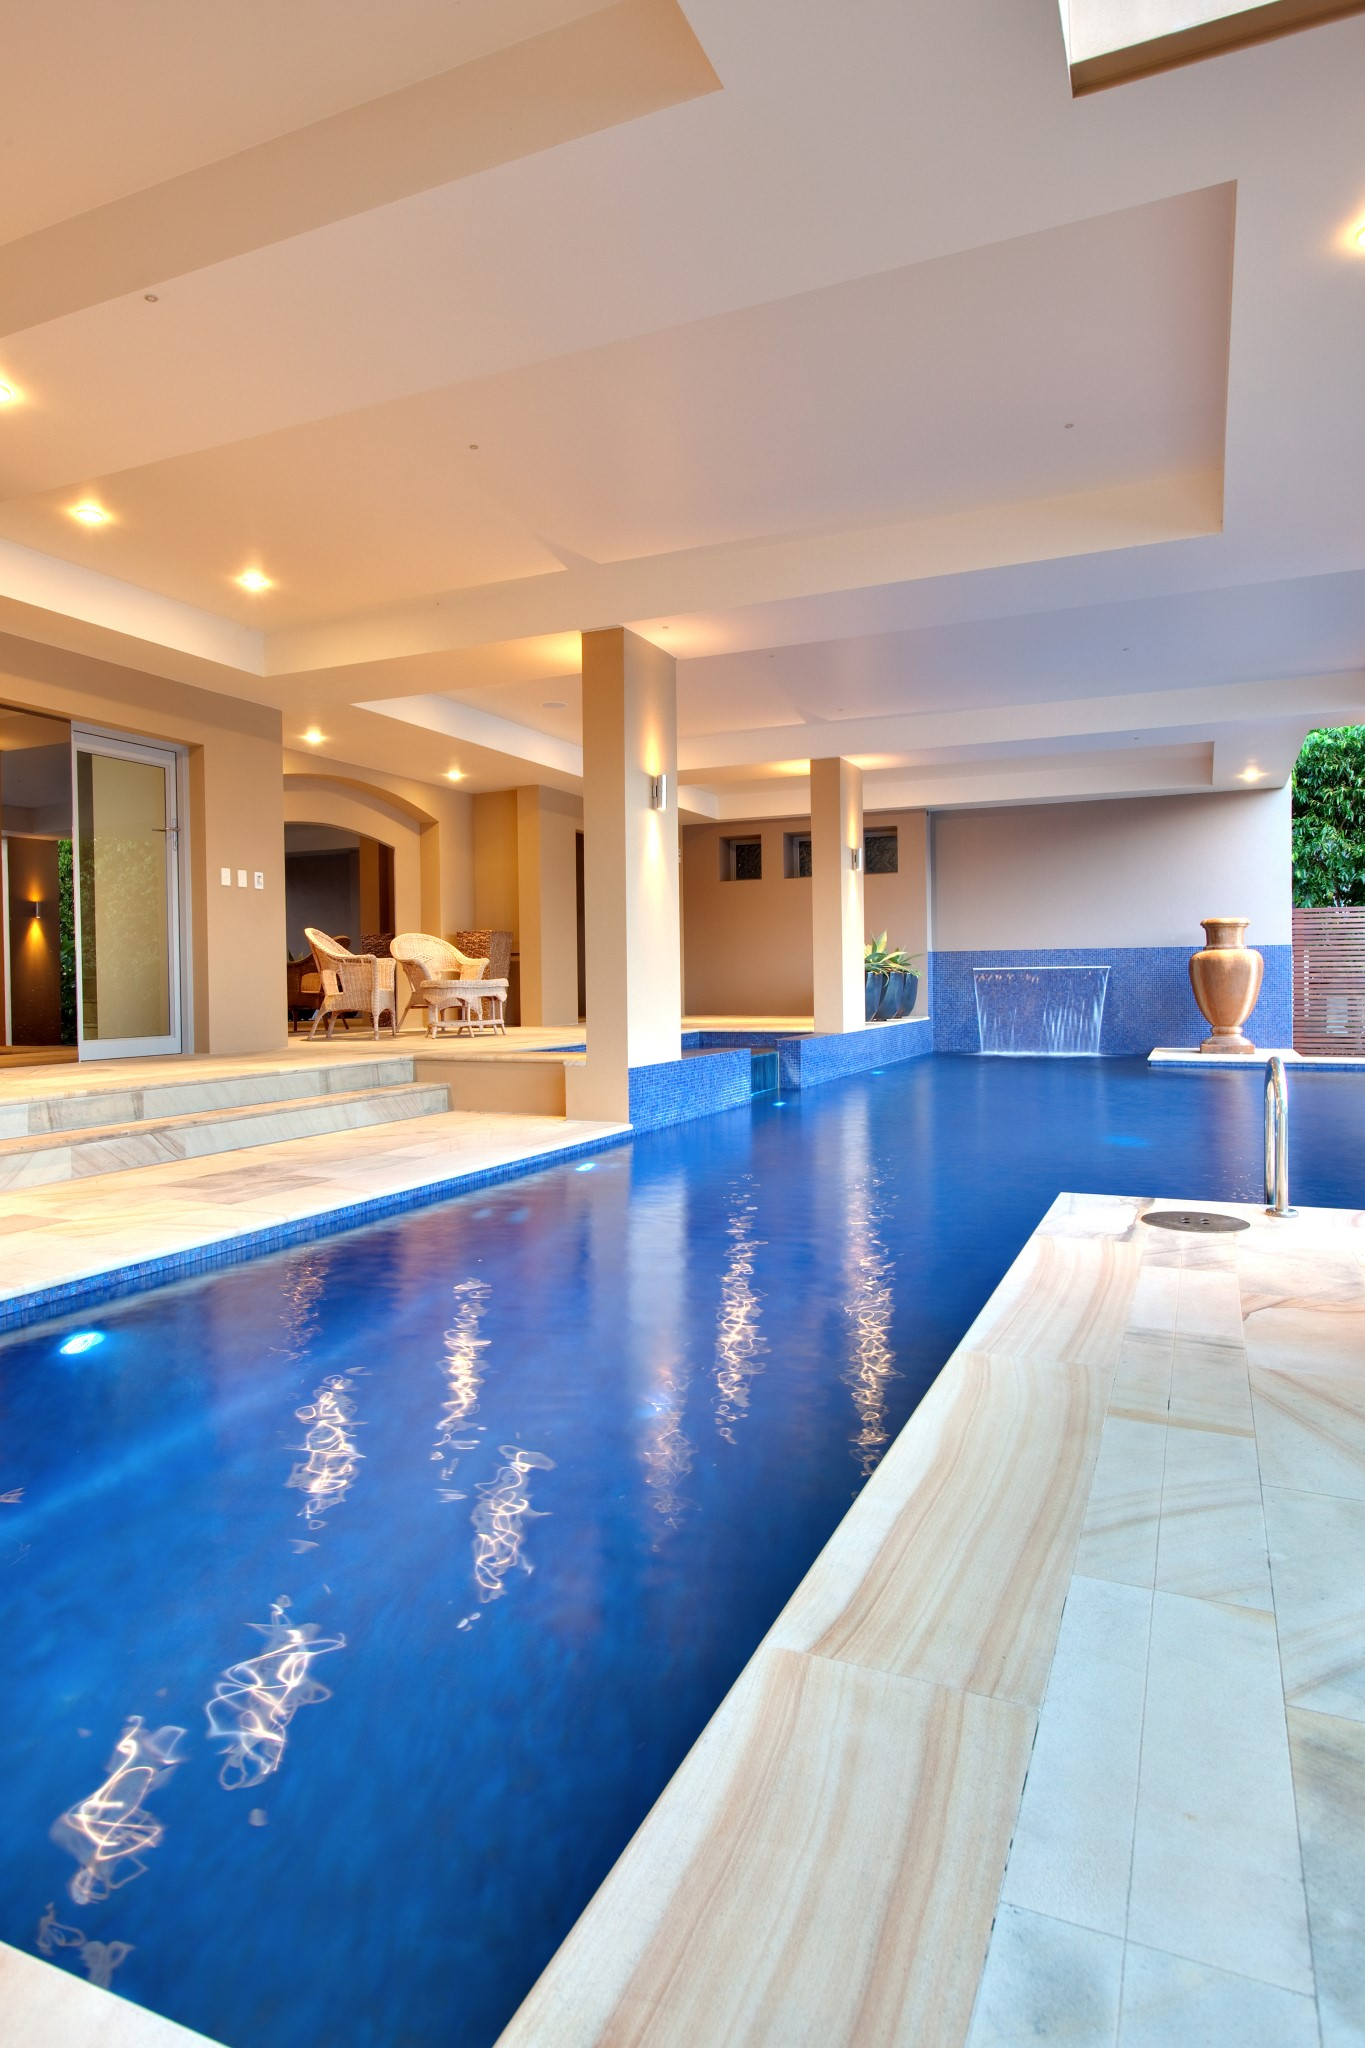 Luxury house and swimming pool with modern water features